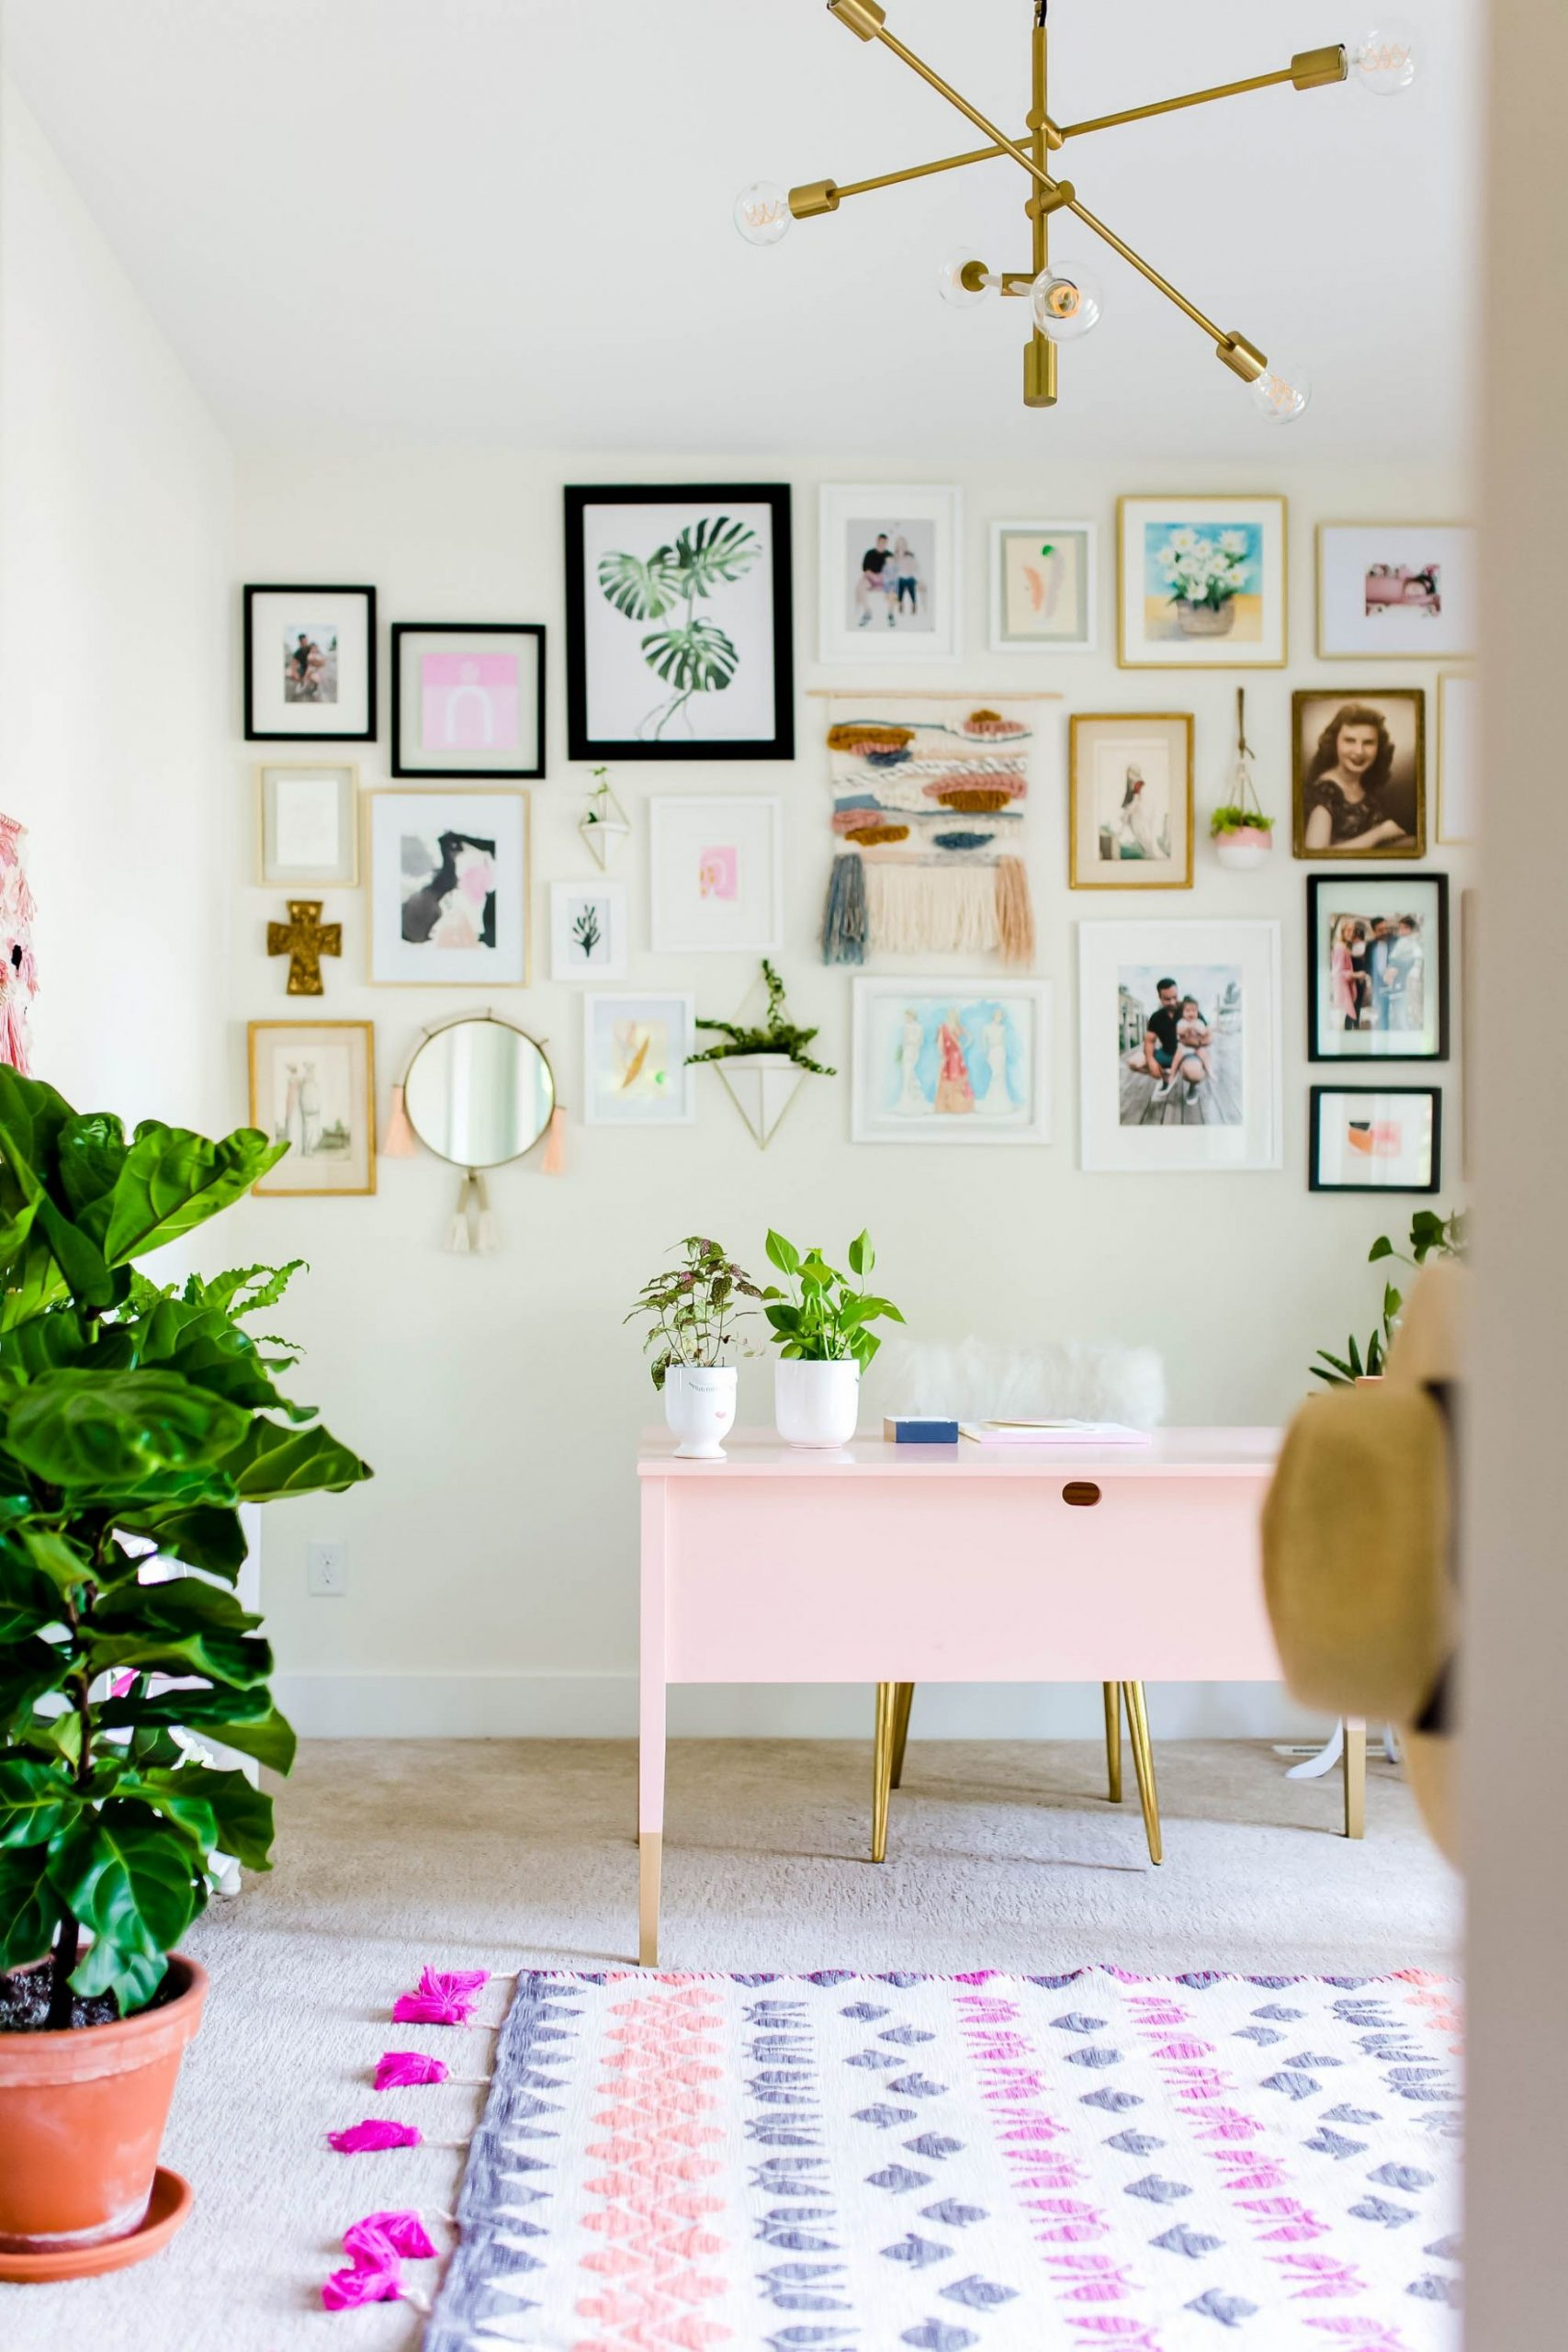 12 DIY Home Office Decor Ideas - Best Home Office Decor Projects - Home Office Ideas Gallery